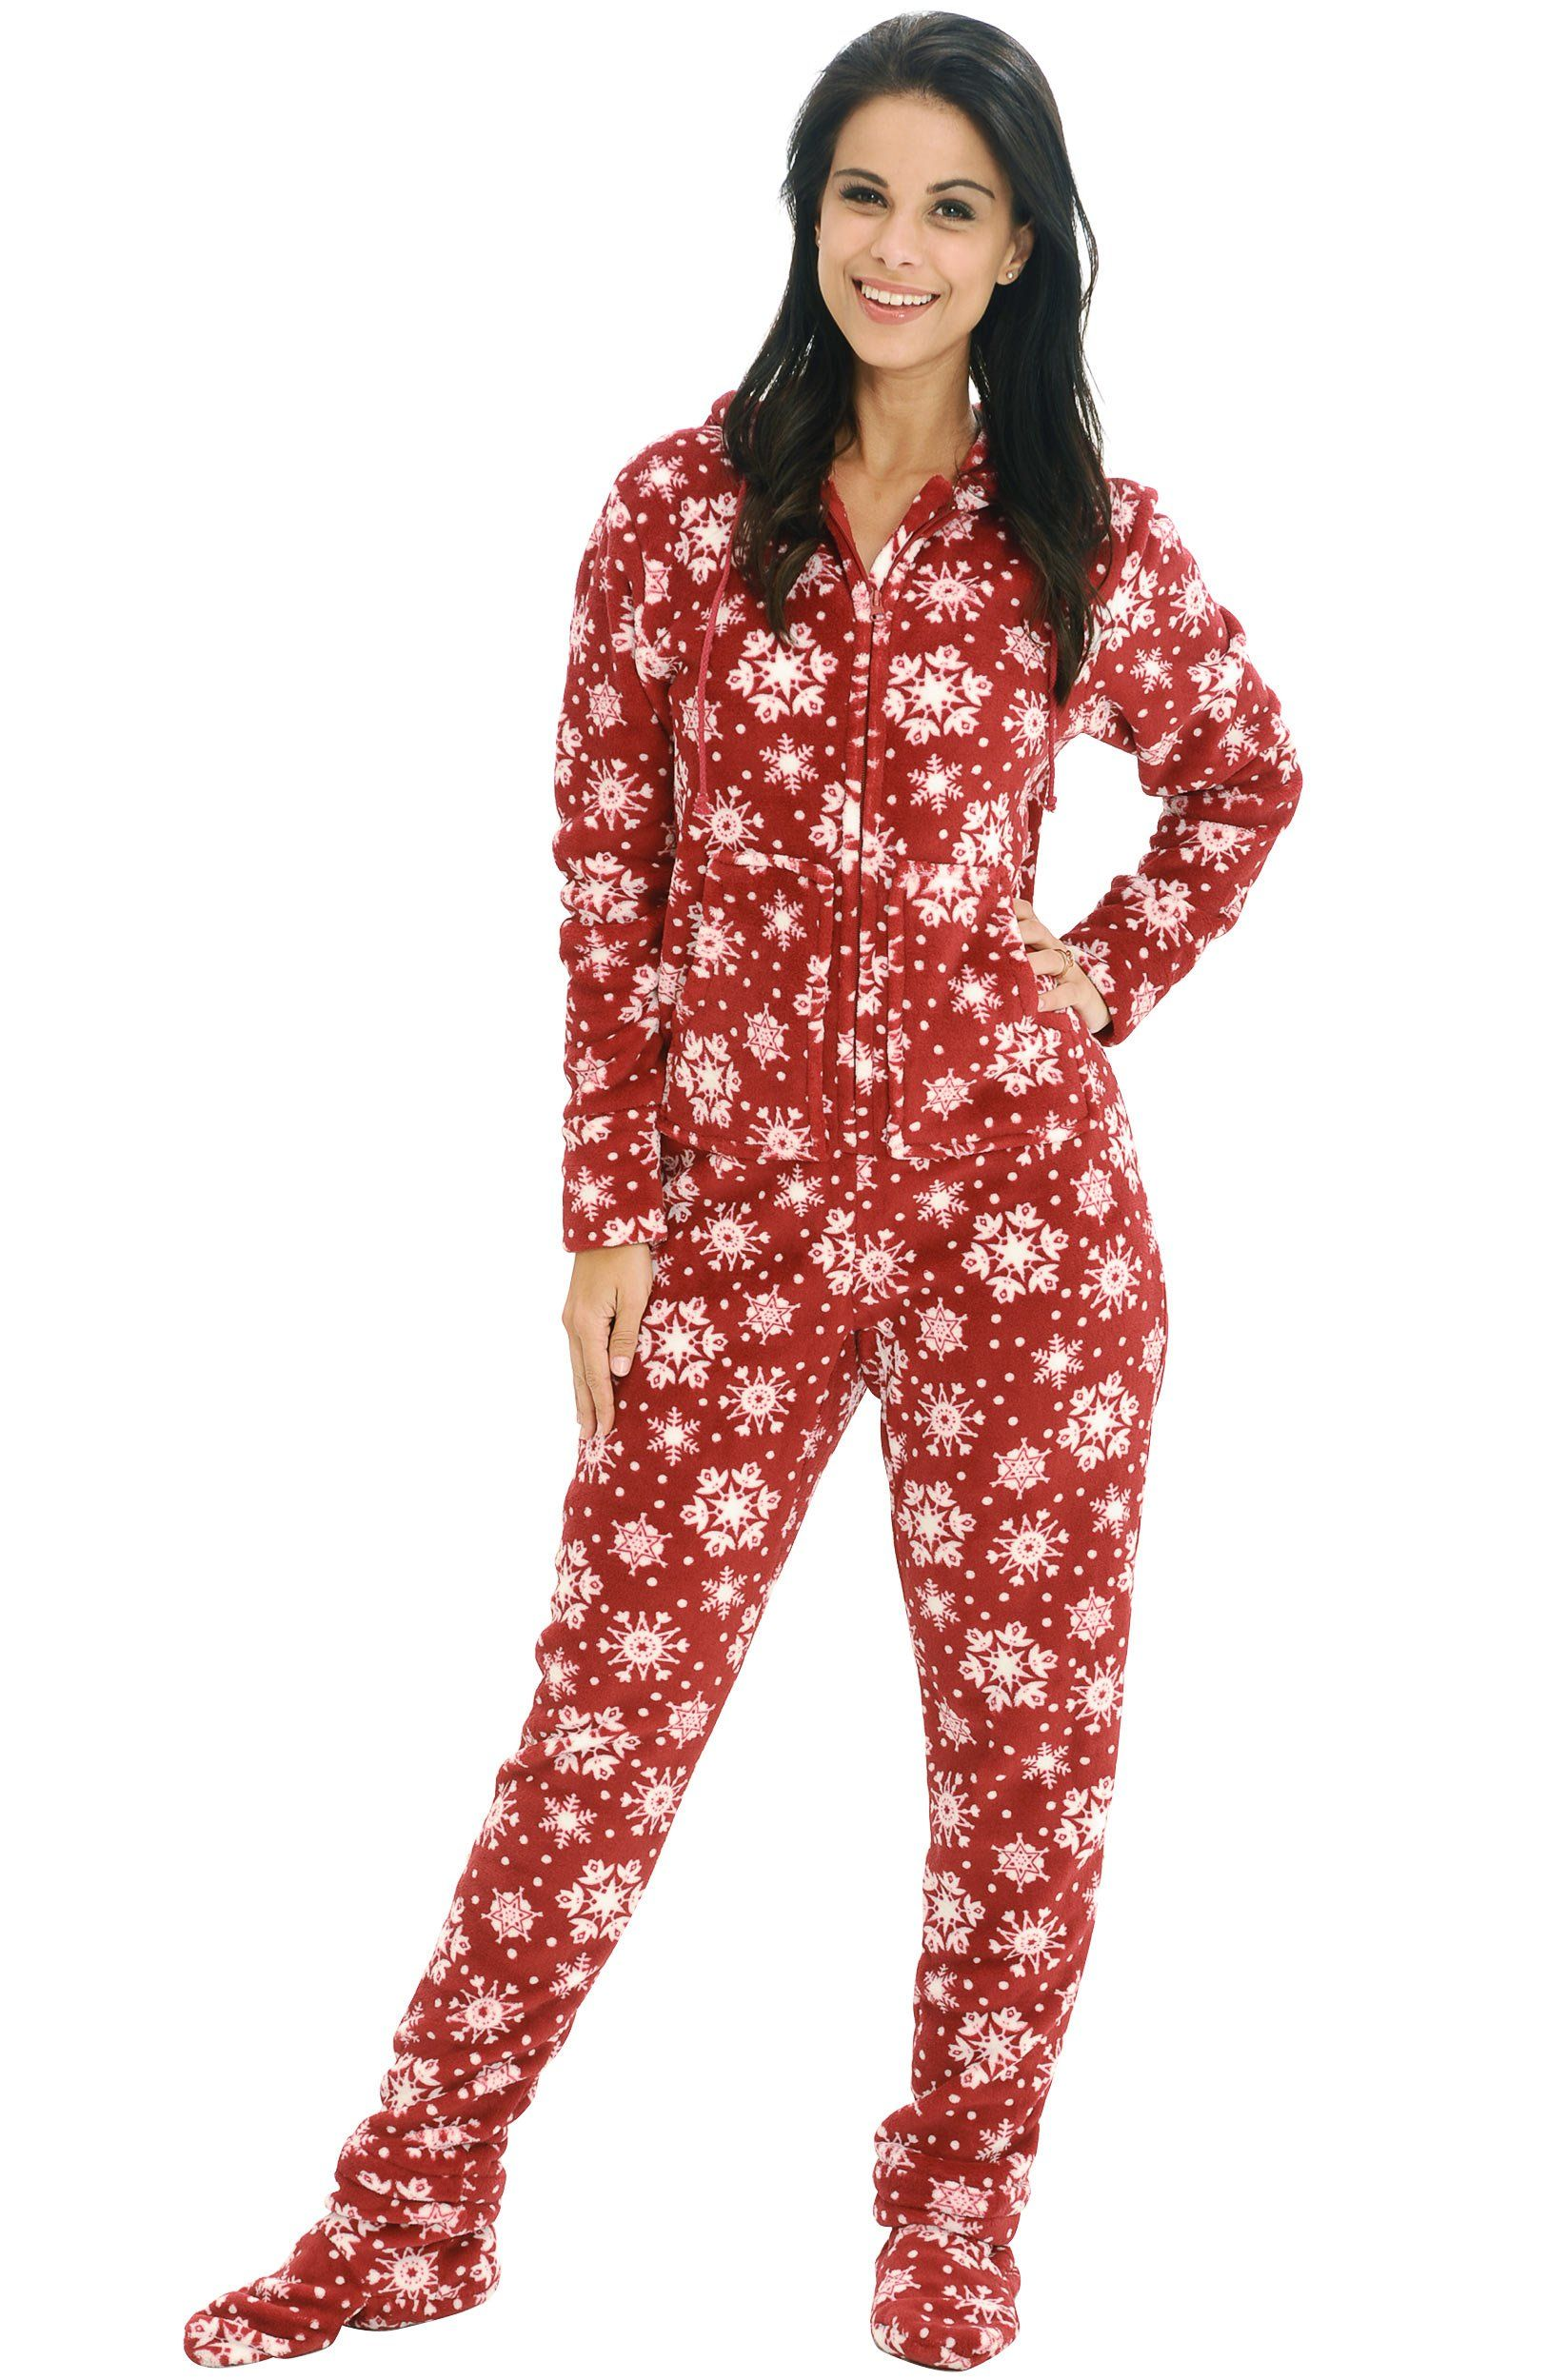 5a6529fca565 Del Rossa Women s Fleece Hooded Footed One Piece Onesie Pajamas ...